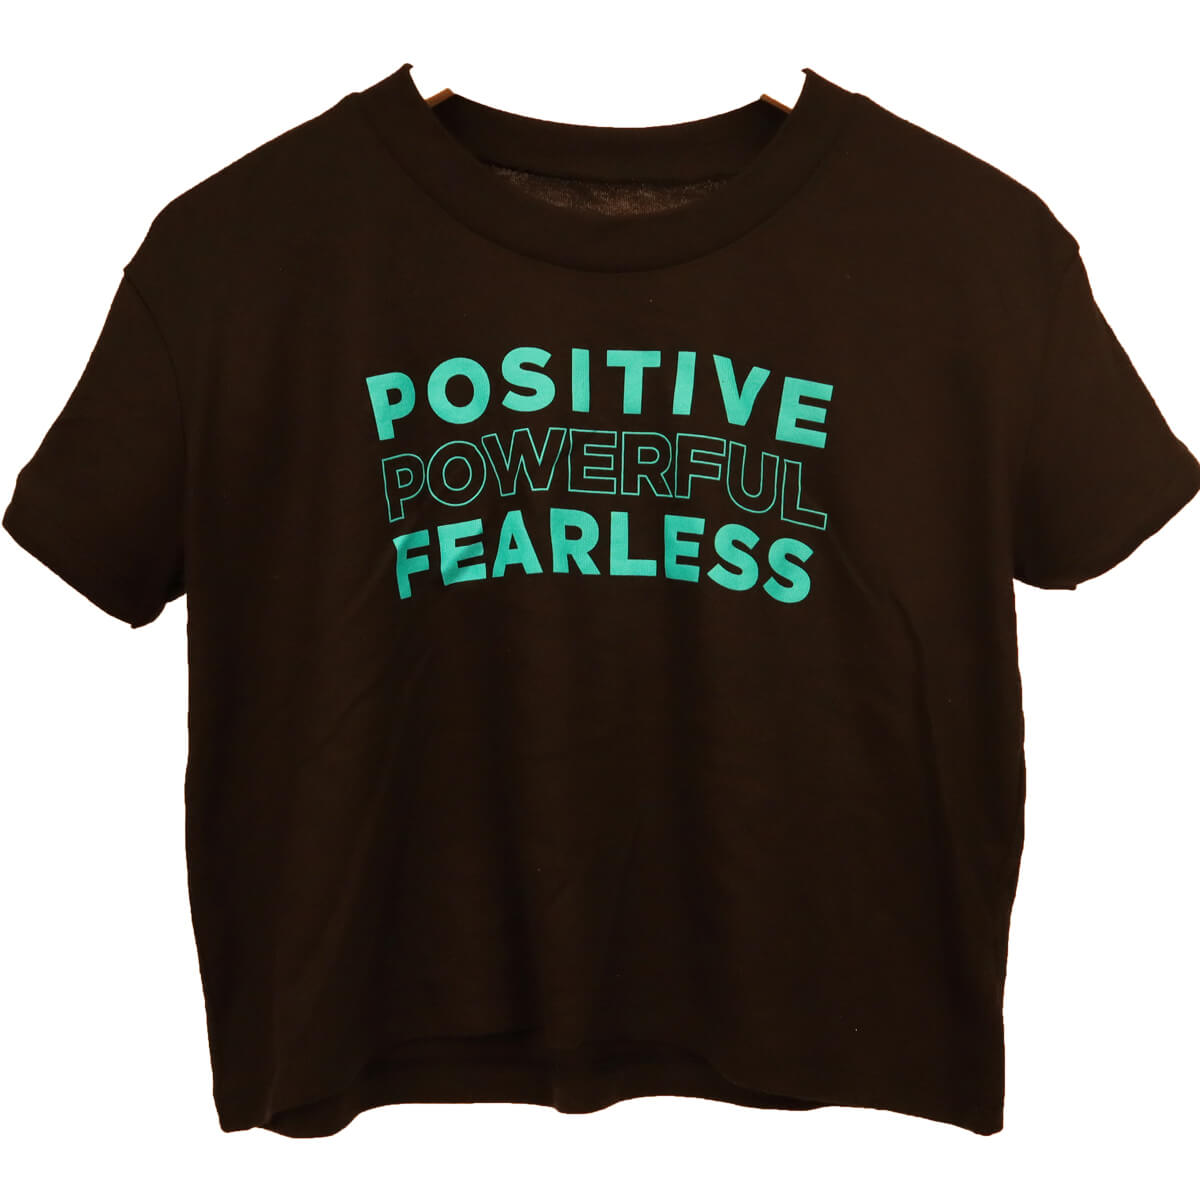 The Ellen DeGeneres Show Shop - Positive Powerful Fearless Cropped Tee - Black - Front